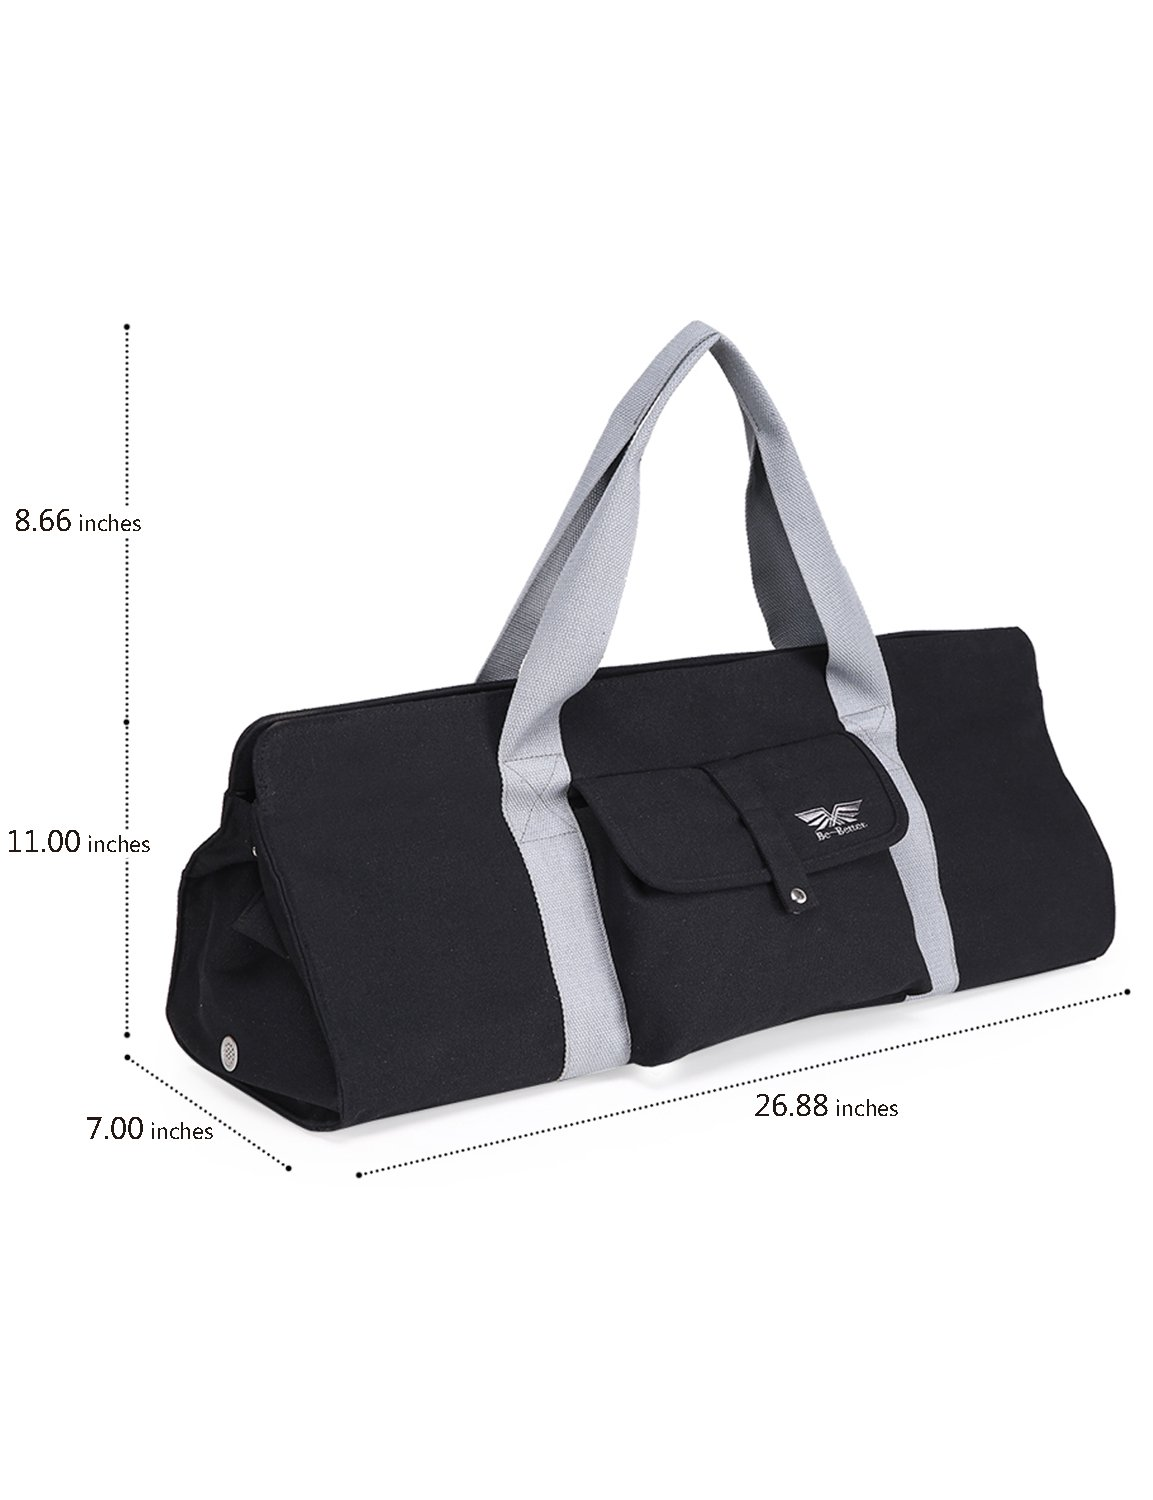 BAGLAND Yoga Mat Carrier Tote Bag with Expandable Main Compartment for Yoga  Belt e36e1af17a84a